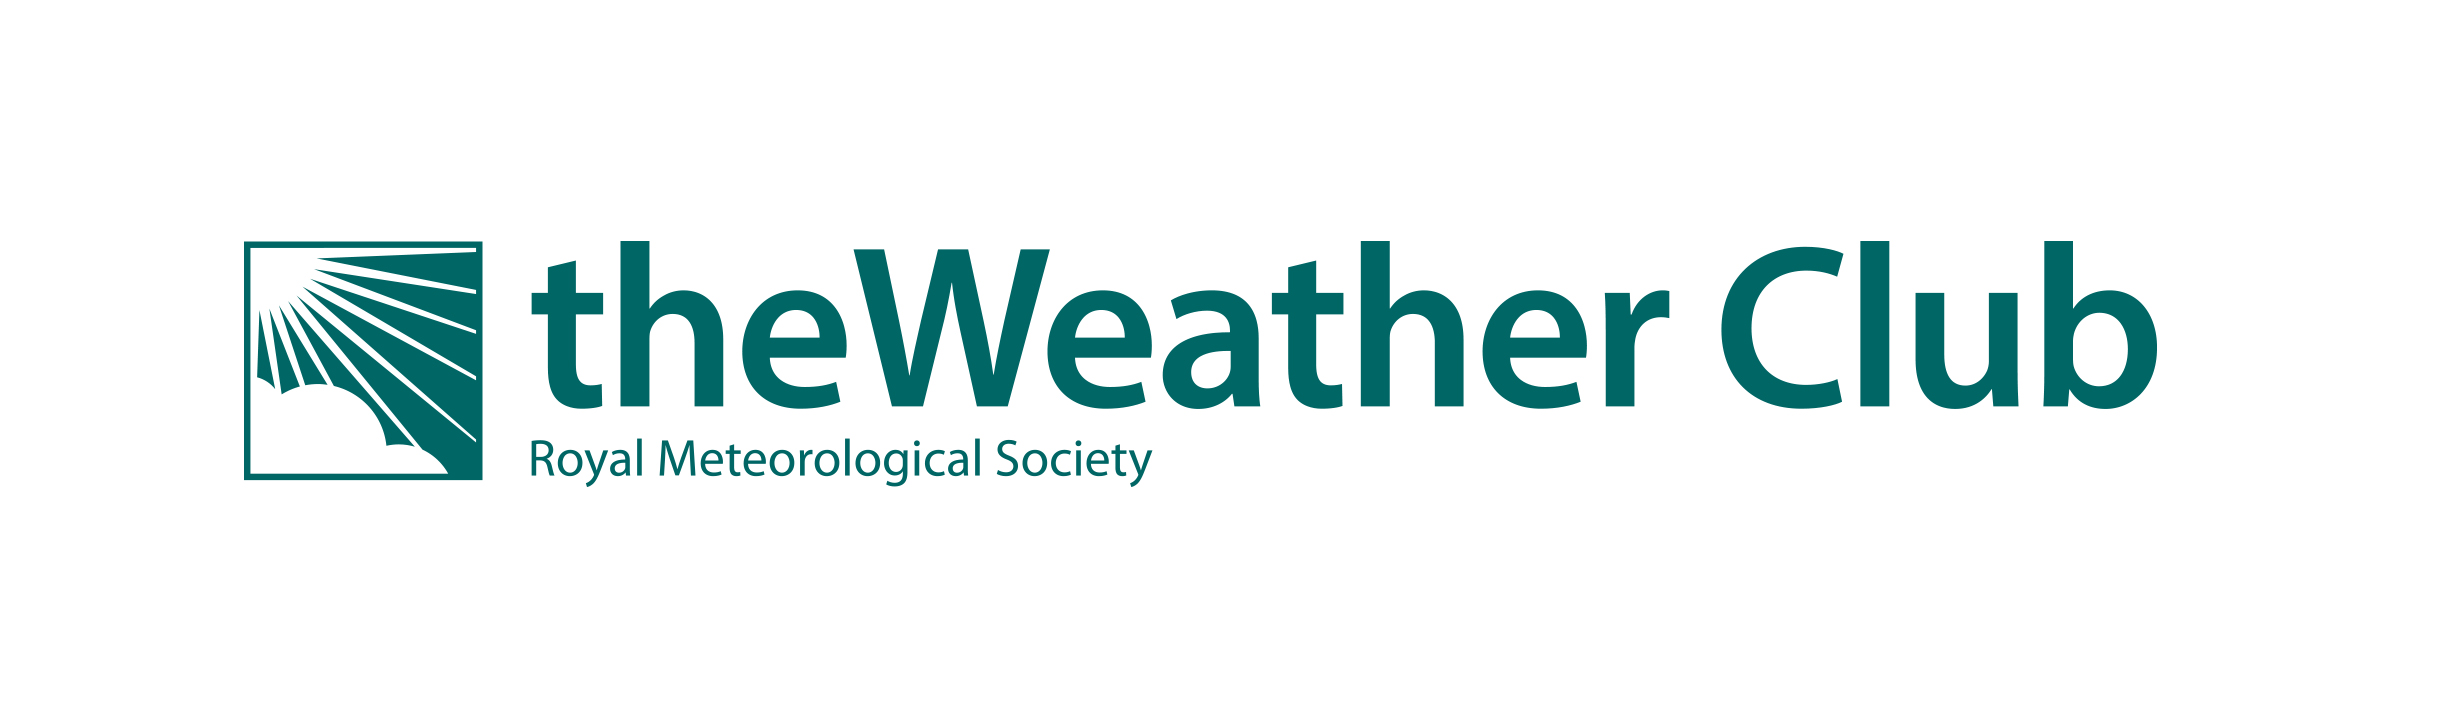 The Weather Club logo